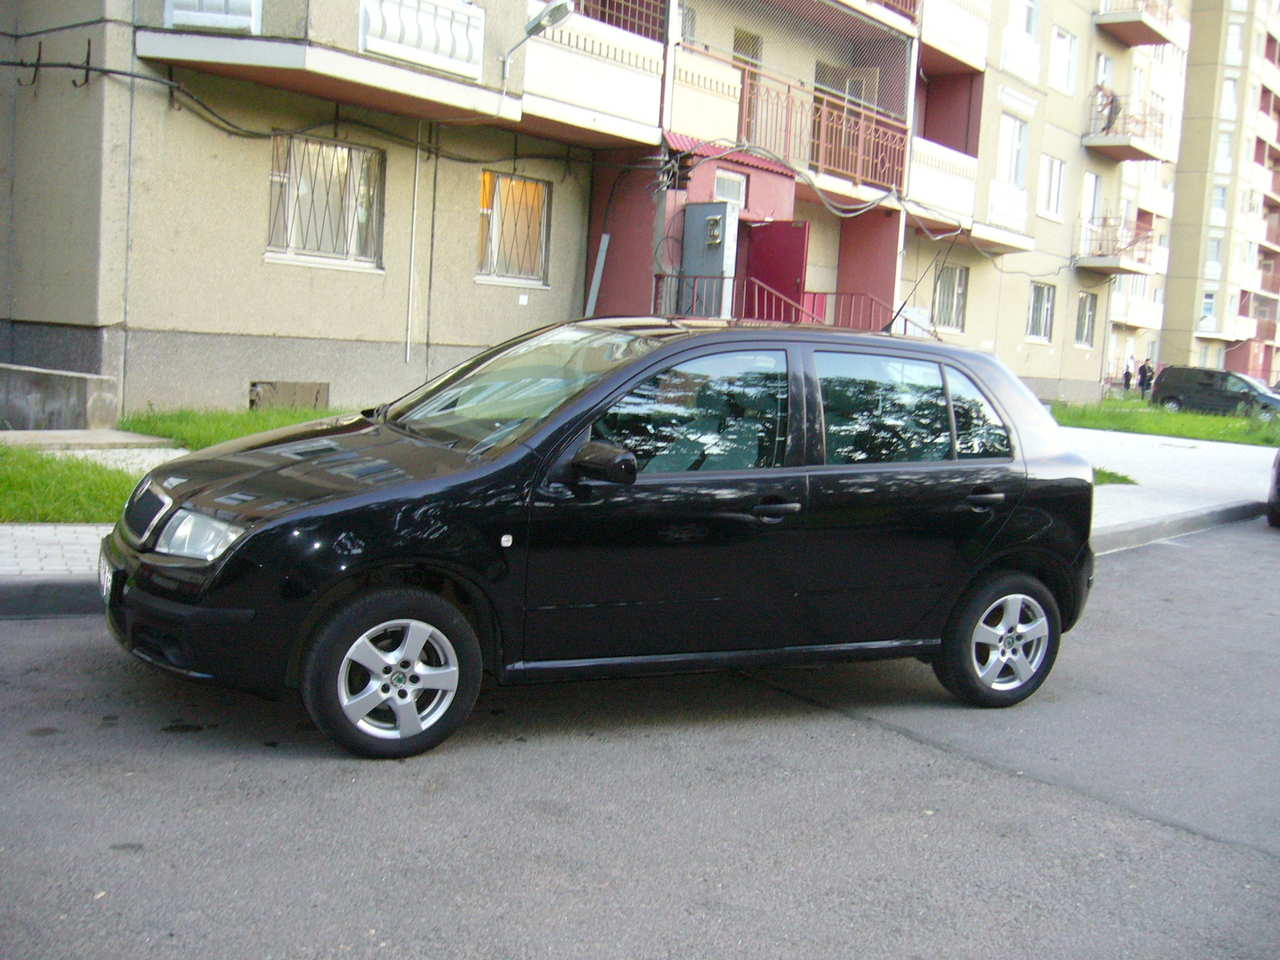 2005 skoda fabia photos 1 2 gasoline ff manual for sale. Black Bedroom Furniture Sets. Home Design Ideas